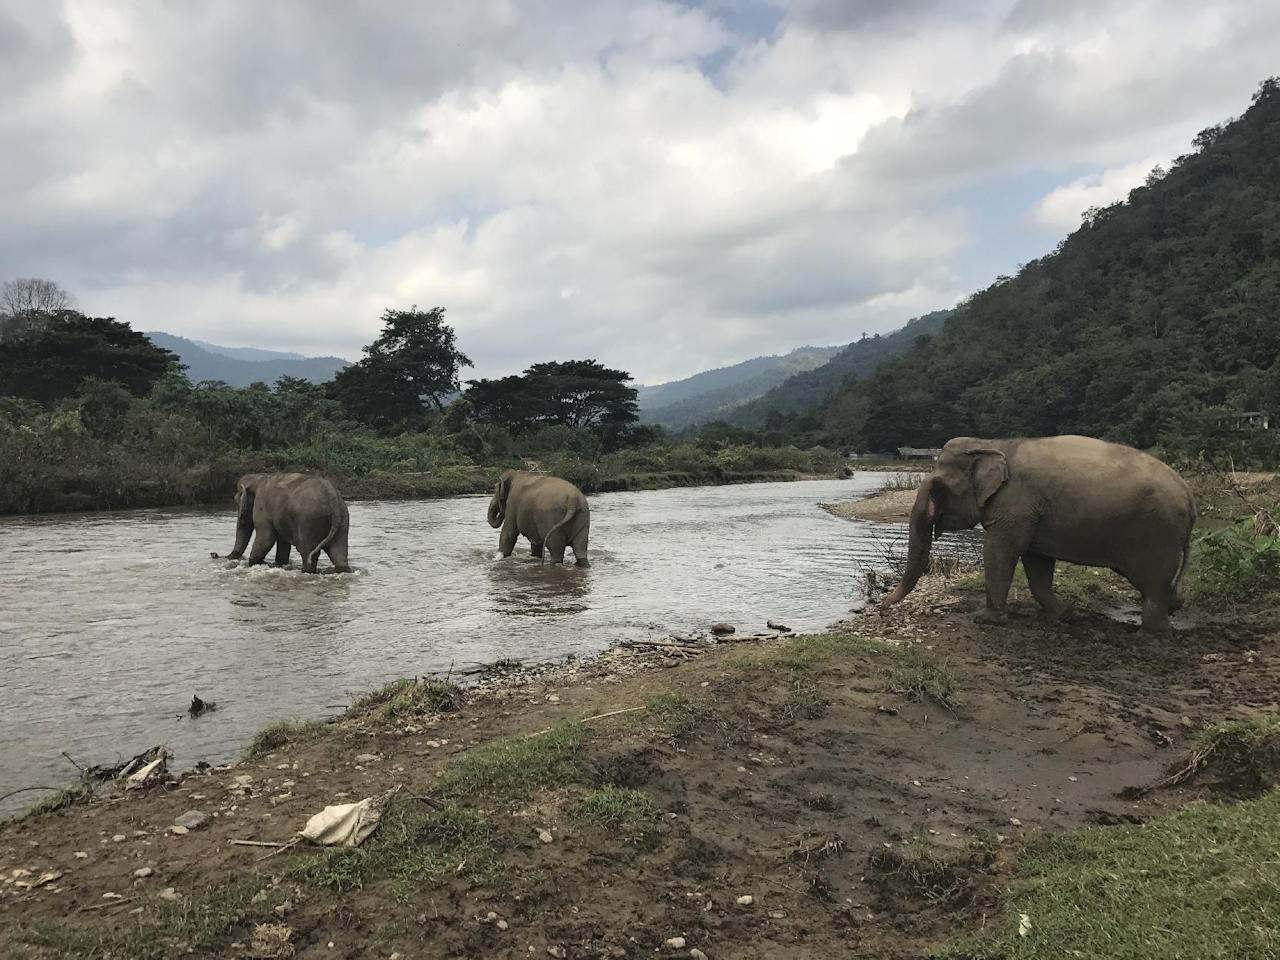 In this Nov. 29, 2016 photo, elephants cross a river at the Elephant Nature Park outside Chiang Mai, Thailand. The sanctuary promises an ethical way to interact with the rescued animals, offering tours that let visitors walk beside them through the jungle. (AP Photo/Courtney Bonnell)